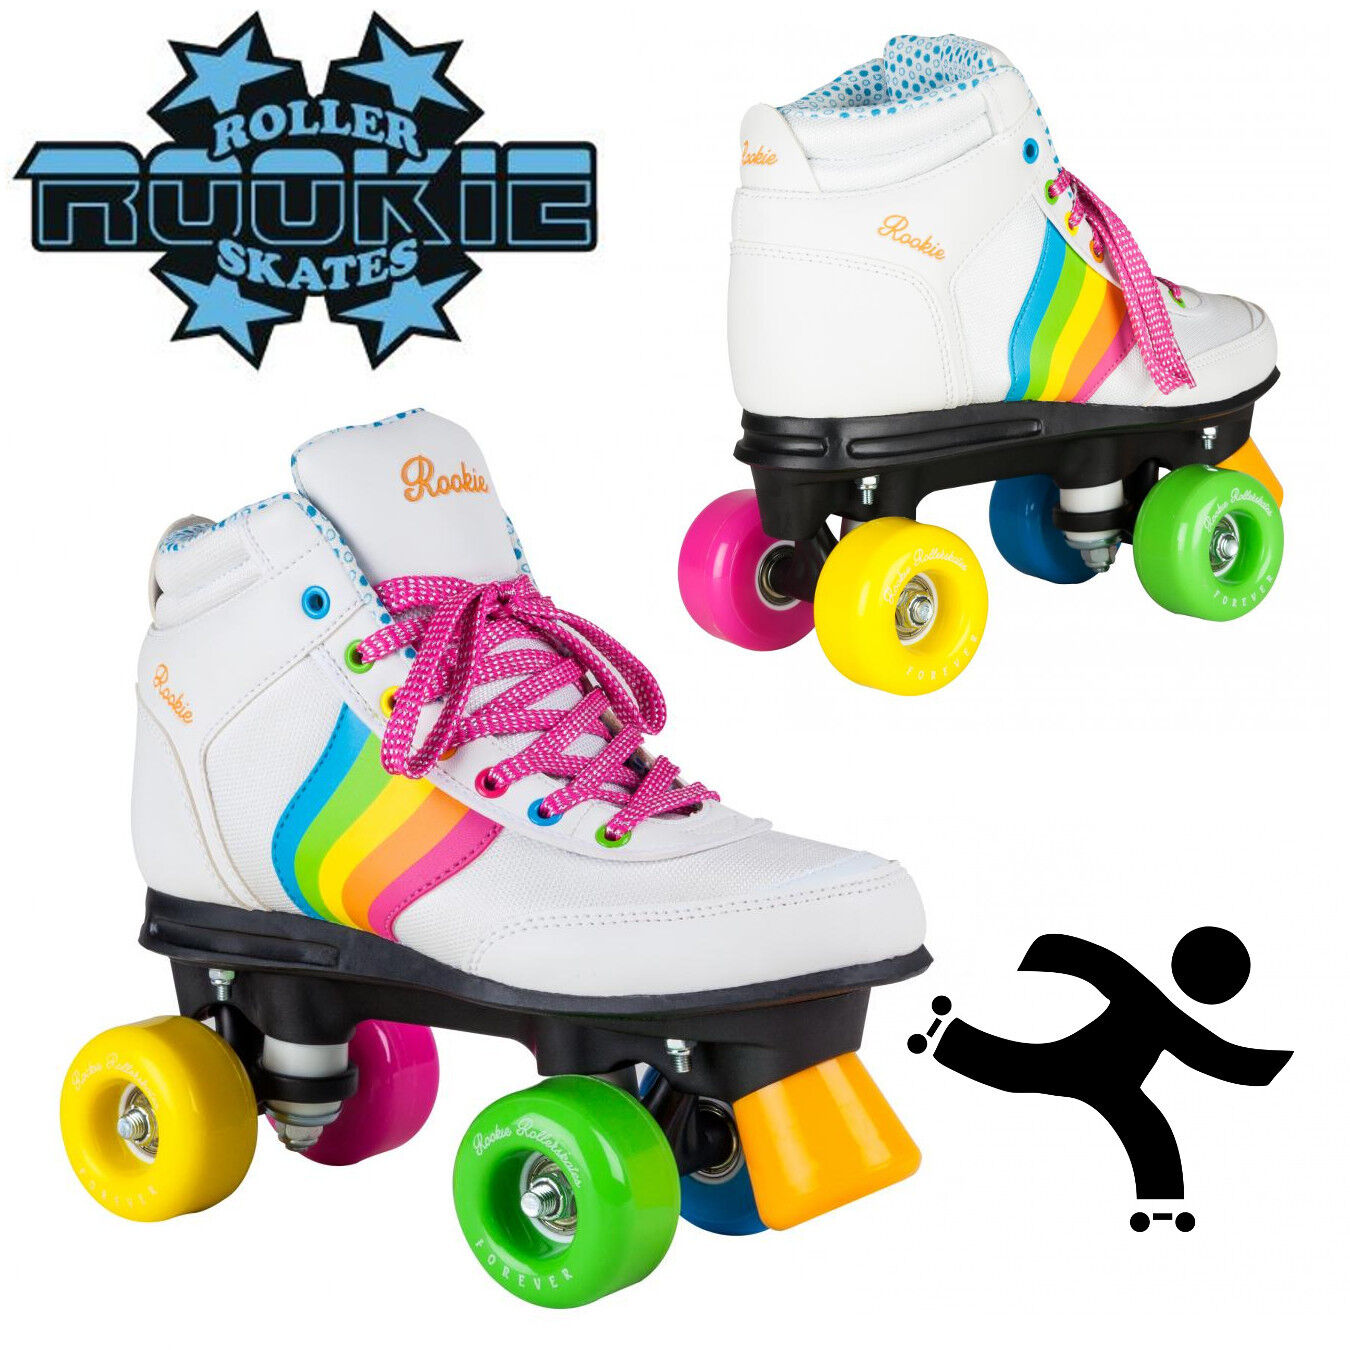 eed98041764 Details about Rookie Roller Skates Forever Rainbow V2 White Retro Style  Girls Adults